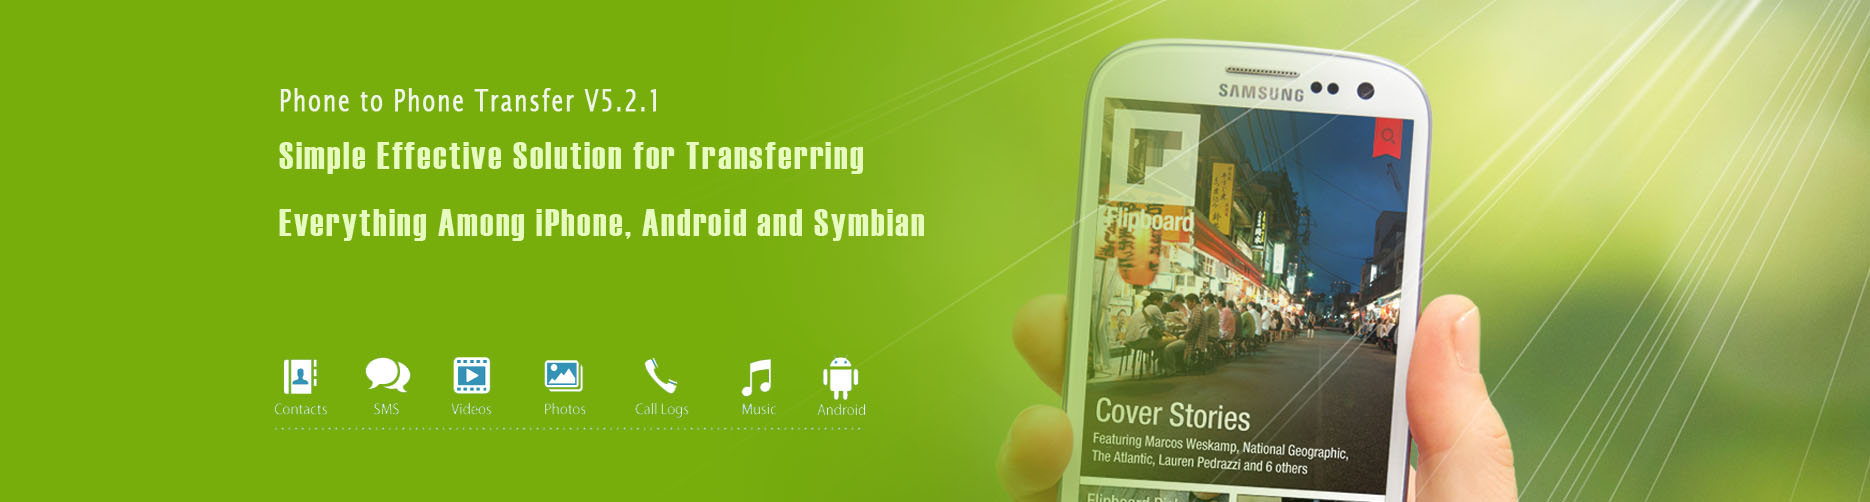 mobile phone Transfer Software Banner